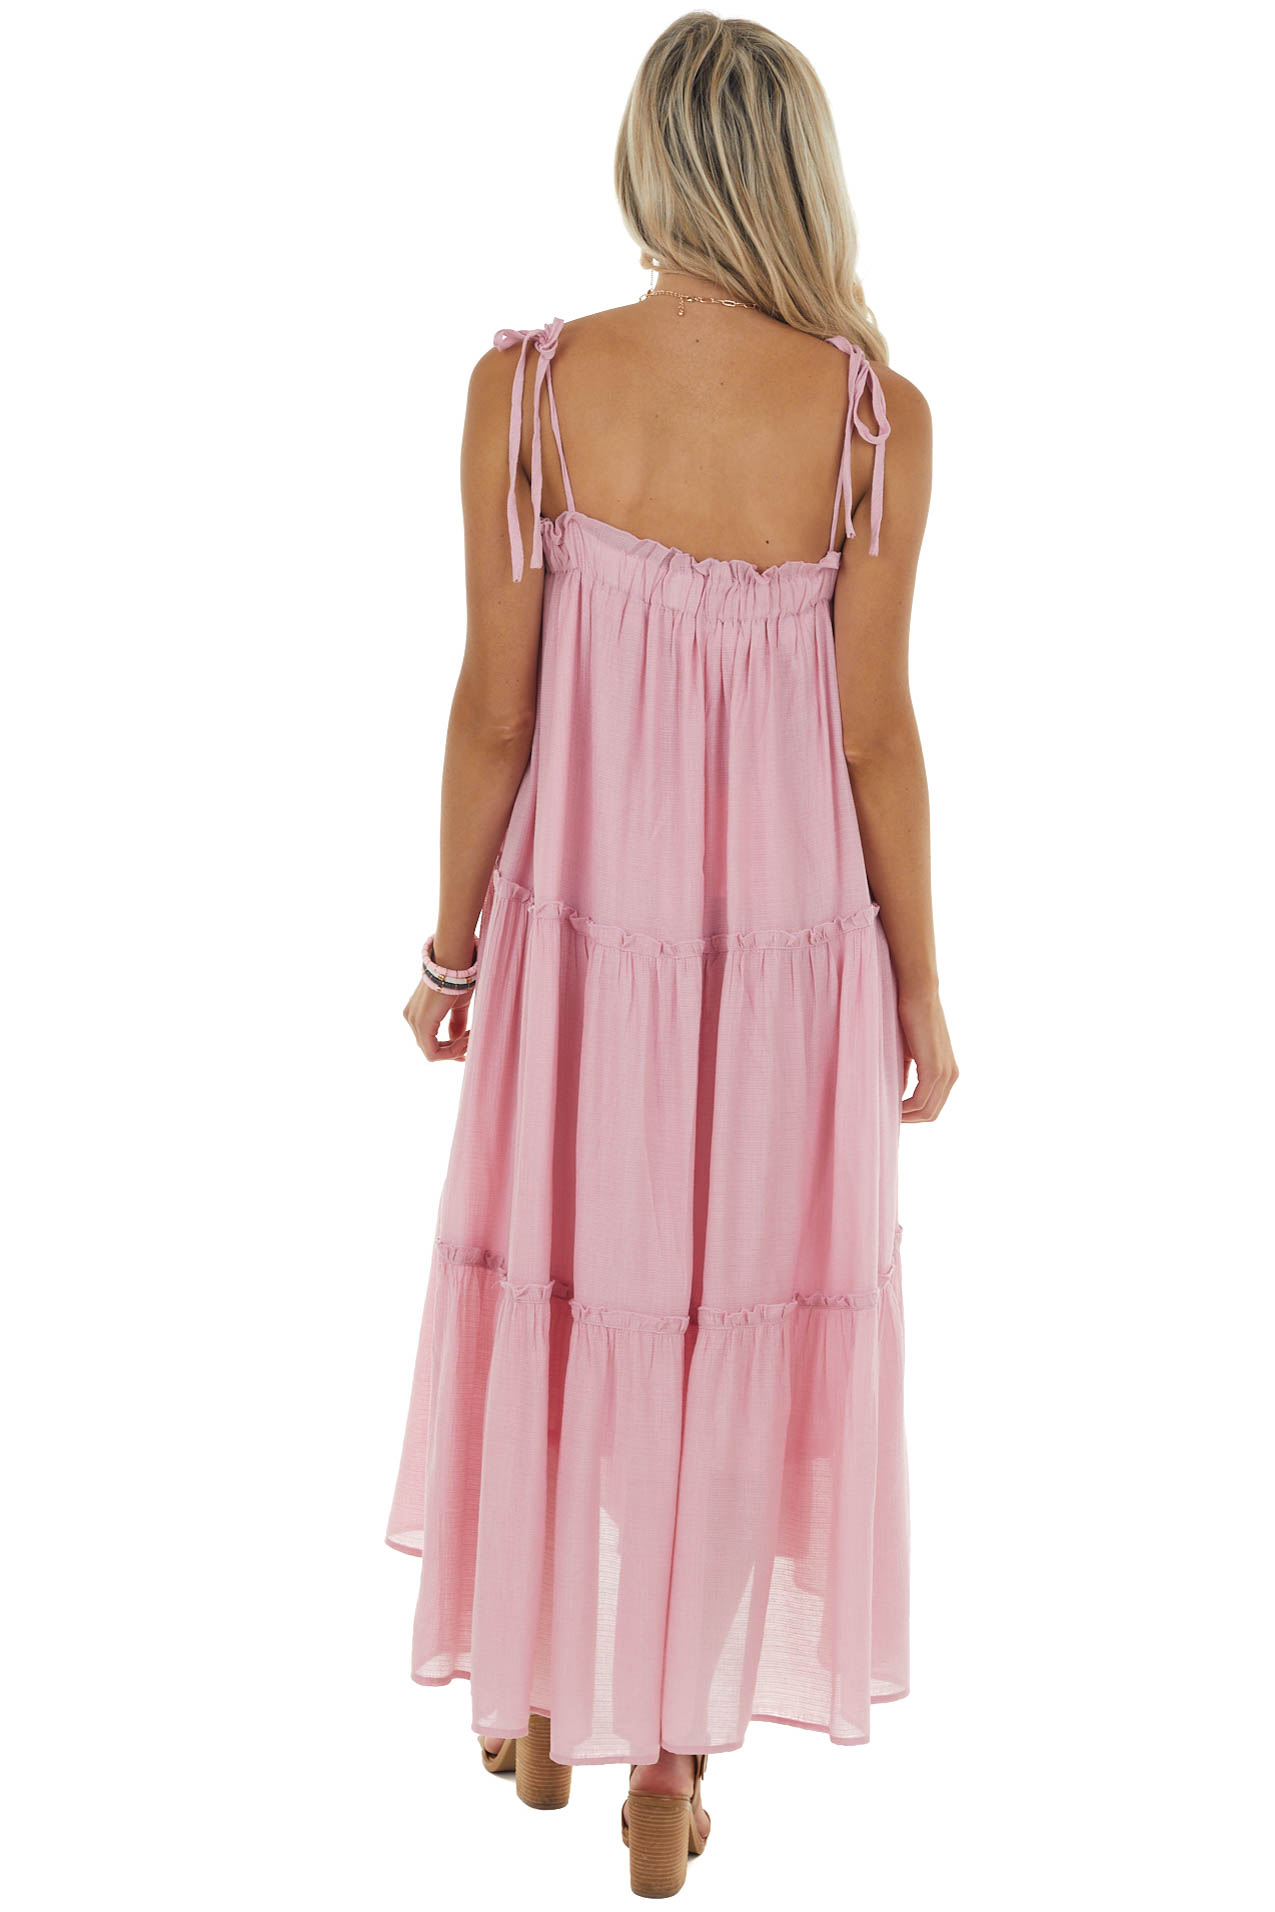 Cherry Blossom Sleeveless Midi Dress with Tiered Details